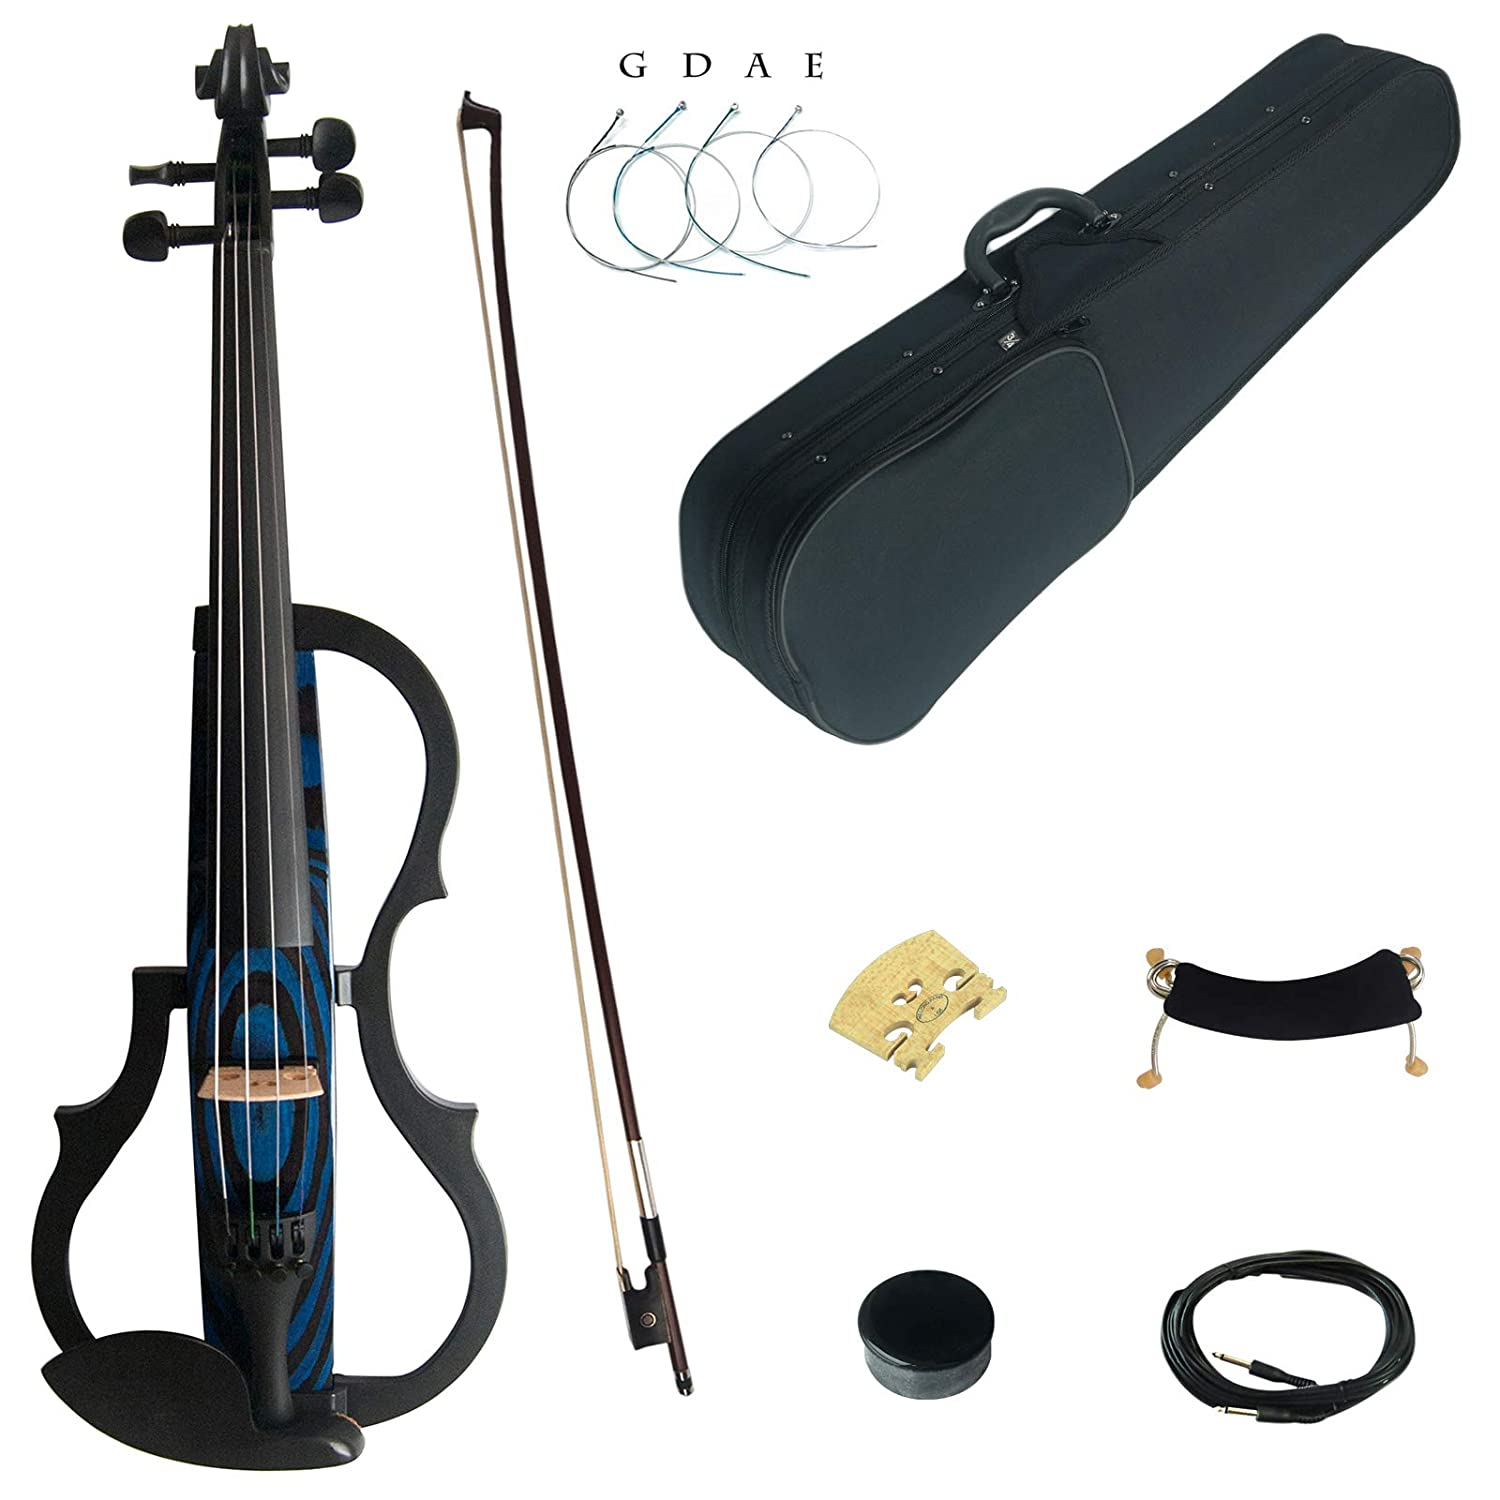 Kinglos 4/4 White Gray Flowers Colored Solid Wood Advanced 3-Band-EQ Electric / Silent Violin Kit with Ebony Fittings Full Size (SDDS1309)